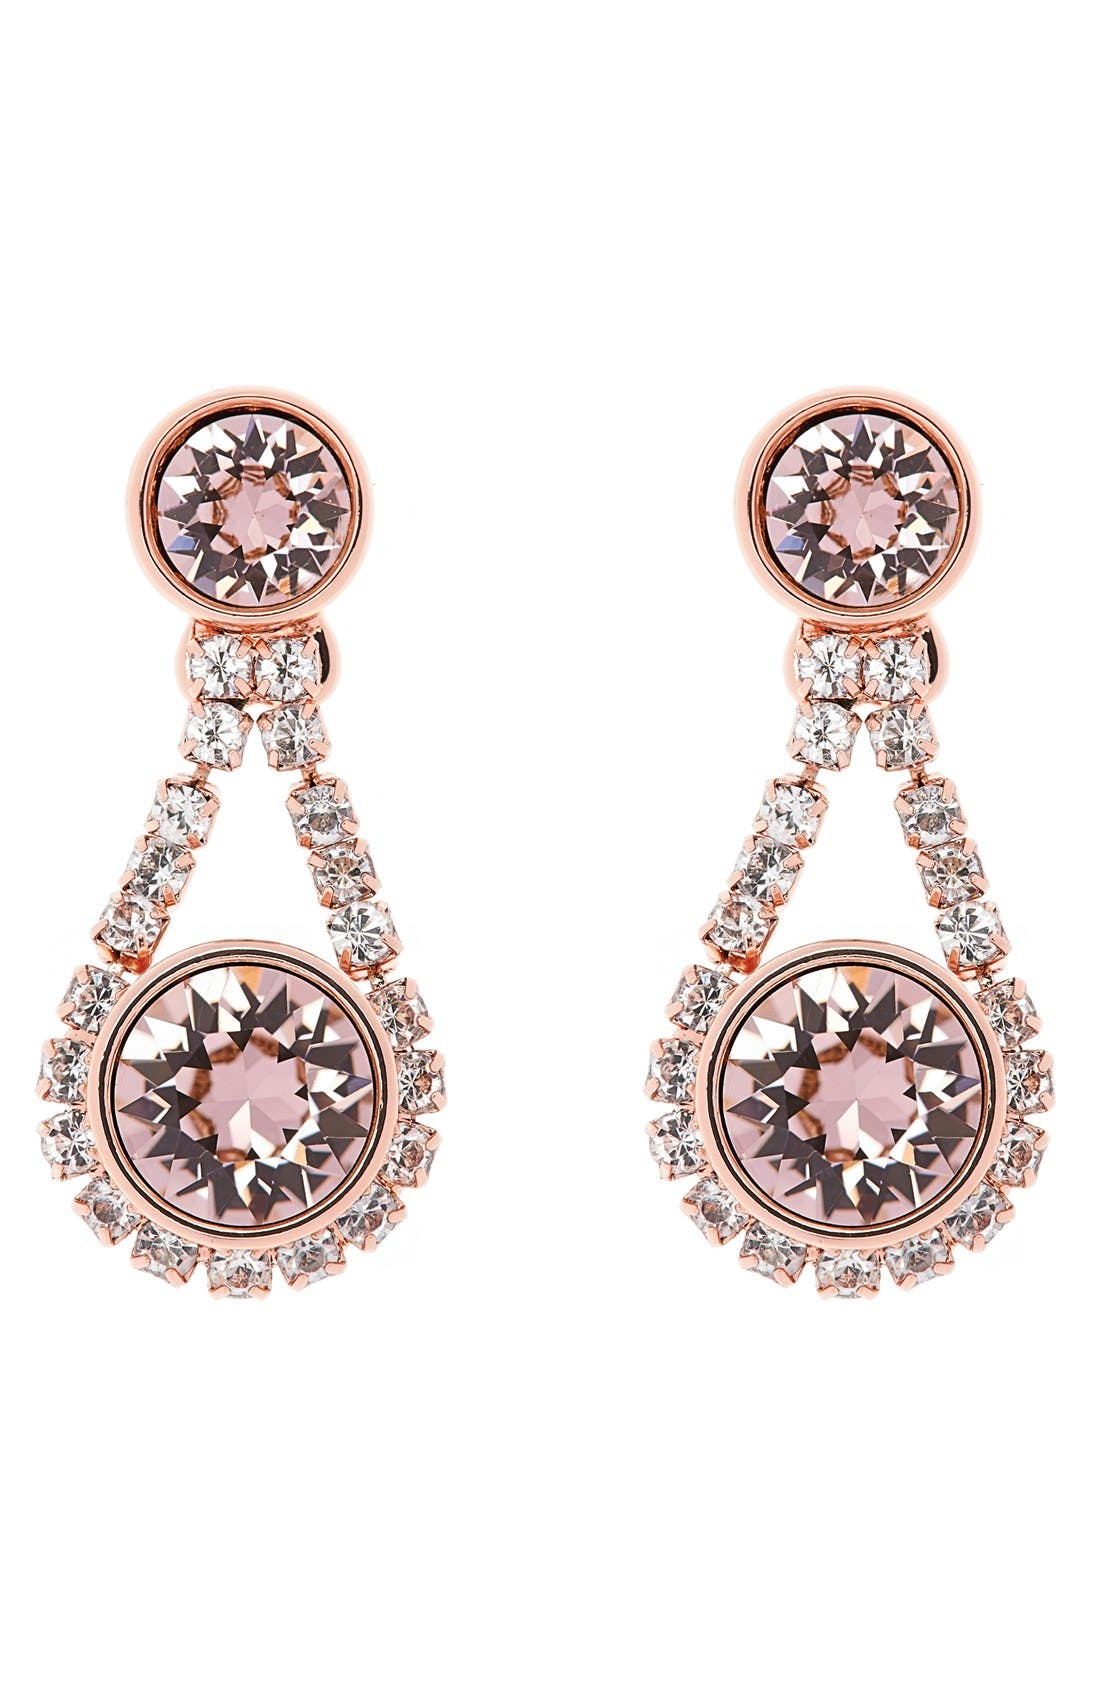 Alternate Image 1 Selected - Ted Baker London 'Crystal Daisy' Drop Earrings